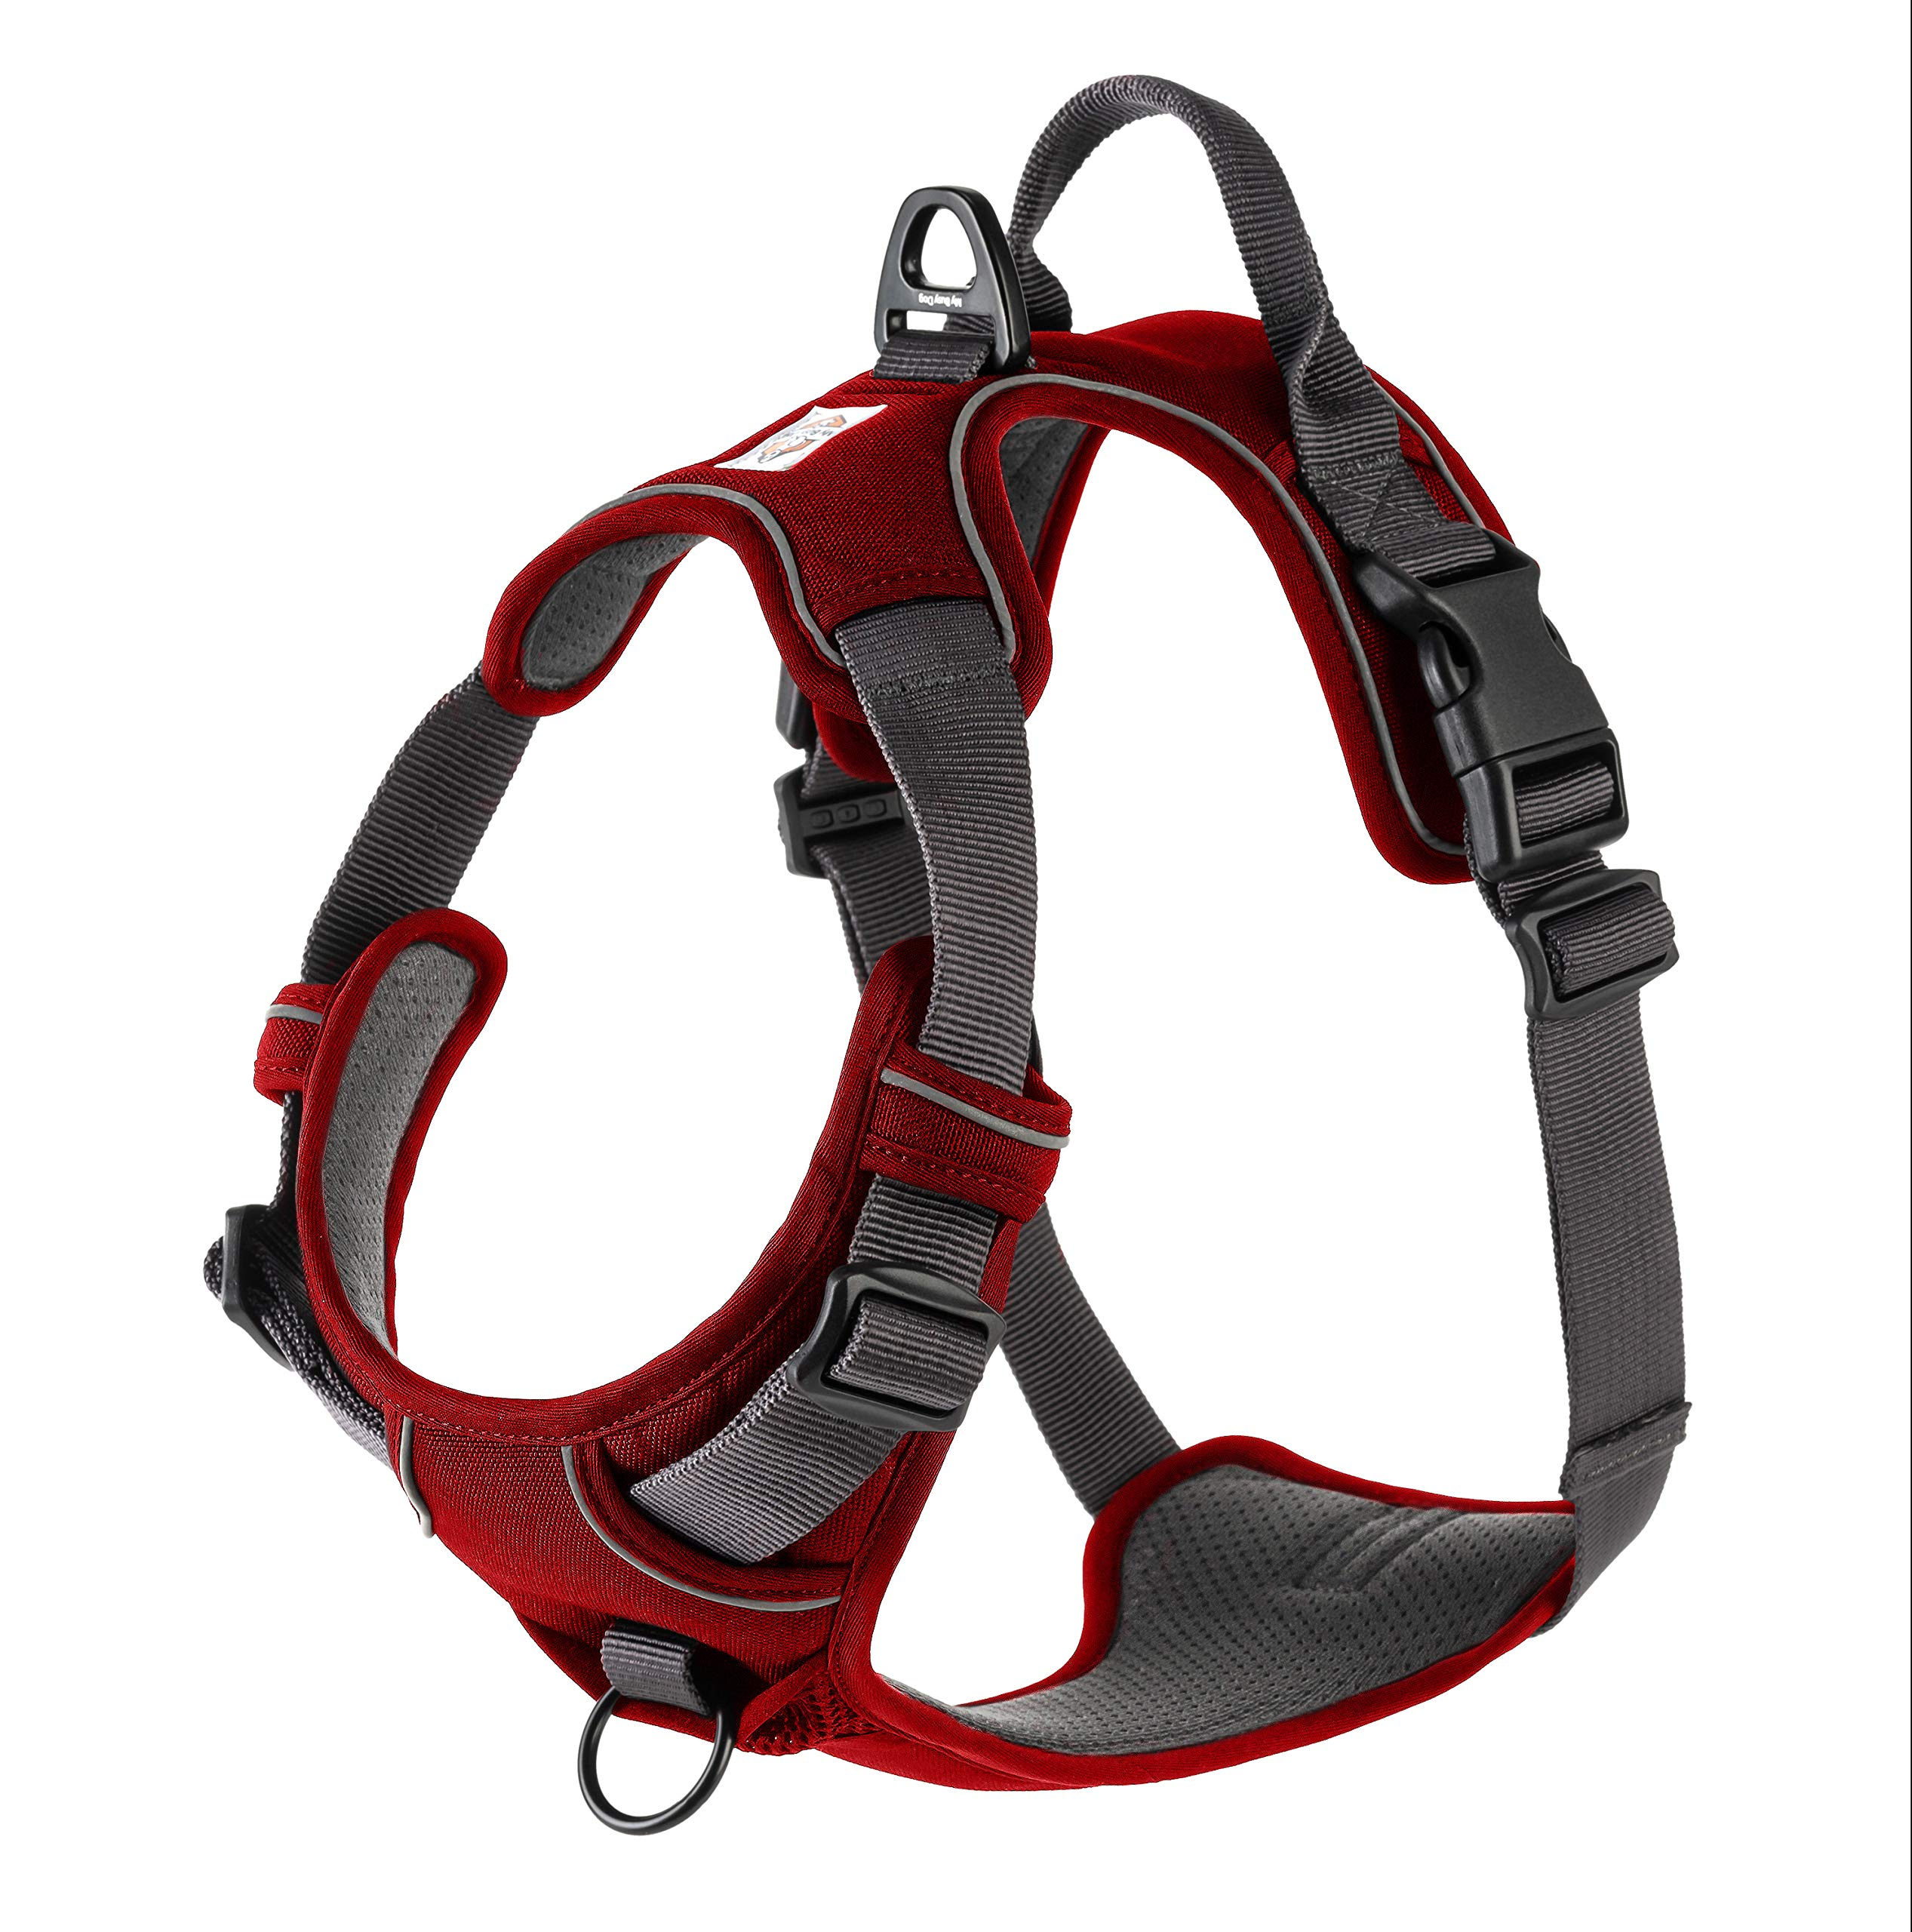 My Busy Dog Harness Vest | No Pull, Easy On/Off, Front/Back Metal Leash Attachments, Handle, Reflective, Secure Fit | Perfect for Small Medium Large Dogs | Size Chart in Pictures (Medium, Red)